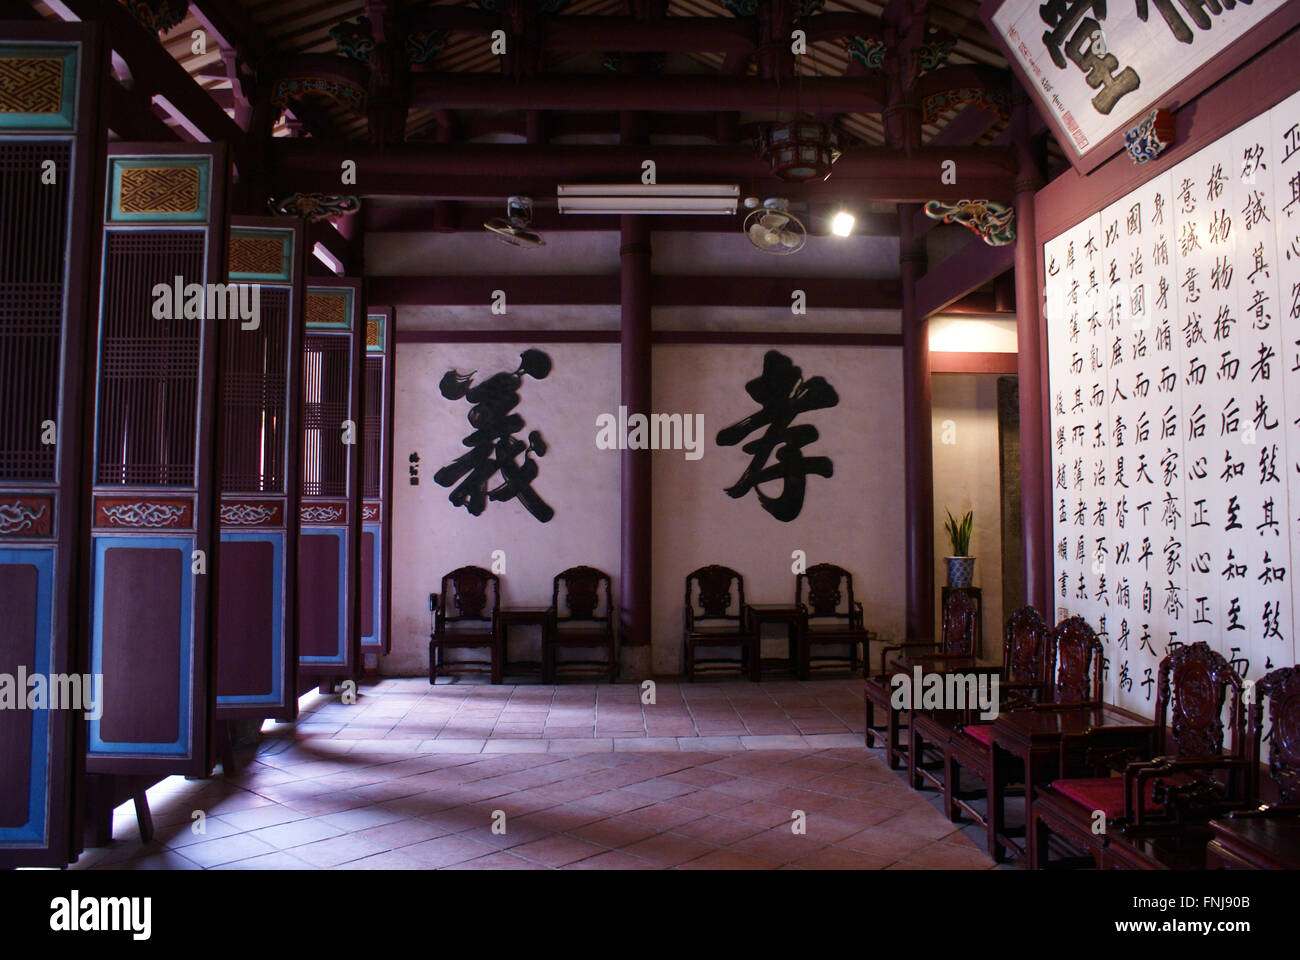 Chinese characters of justice (left) and fidelity (right) written on the wall. - Stock Image